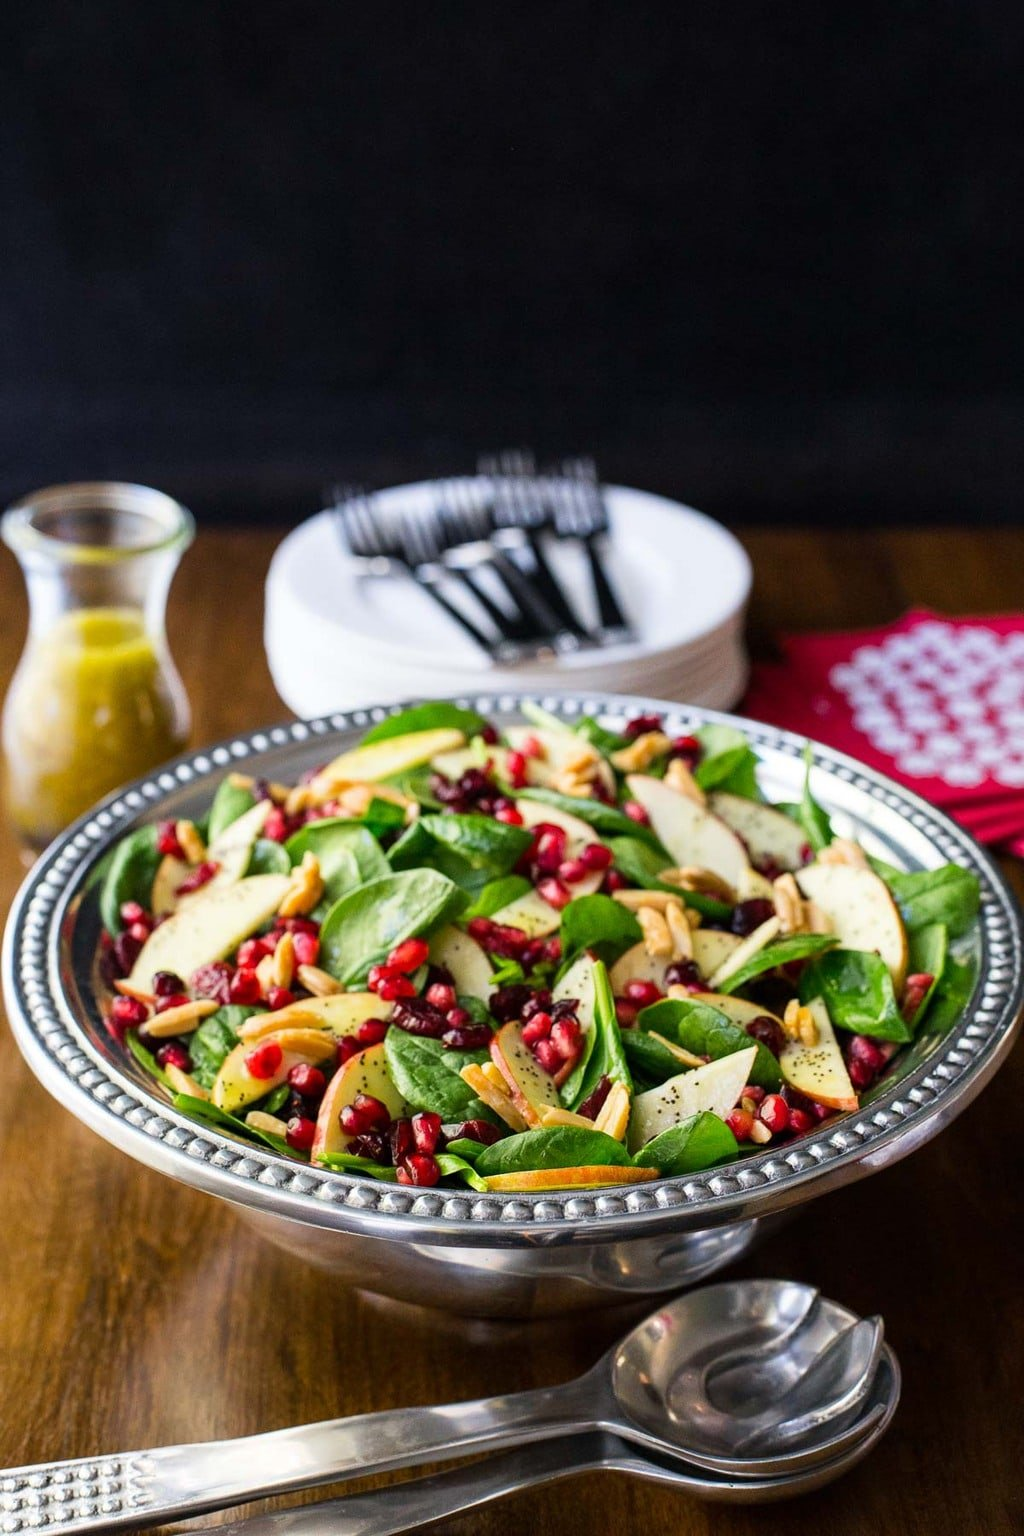 Vertical overall photo of a pewter serving bowl filled with Apple Cranberry Spinach Salad on a wood table.